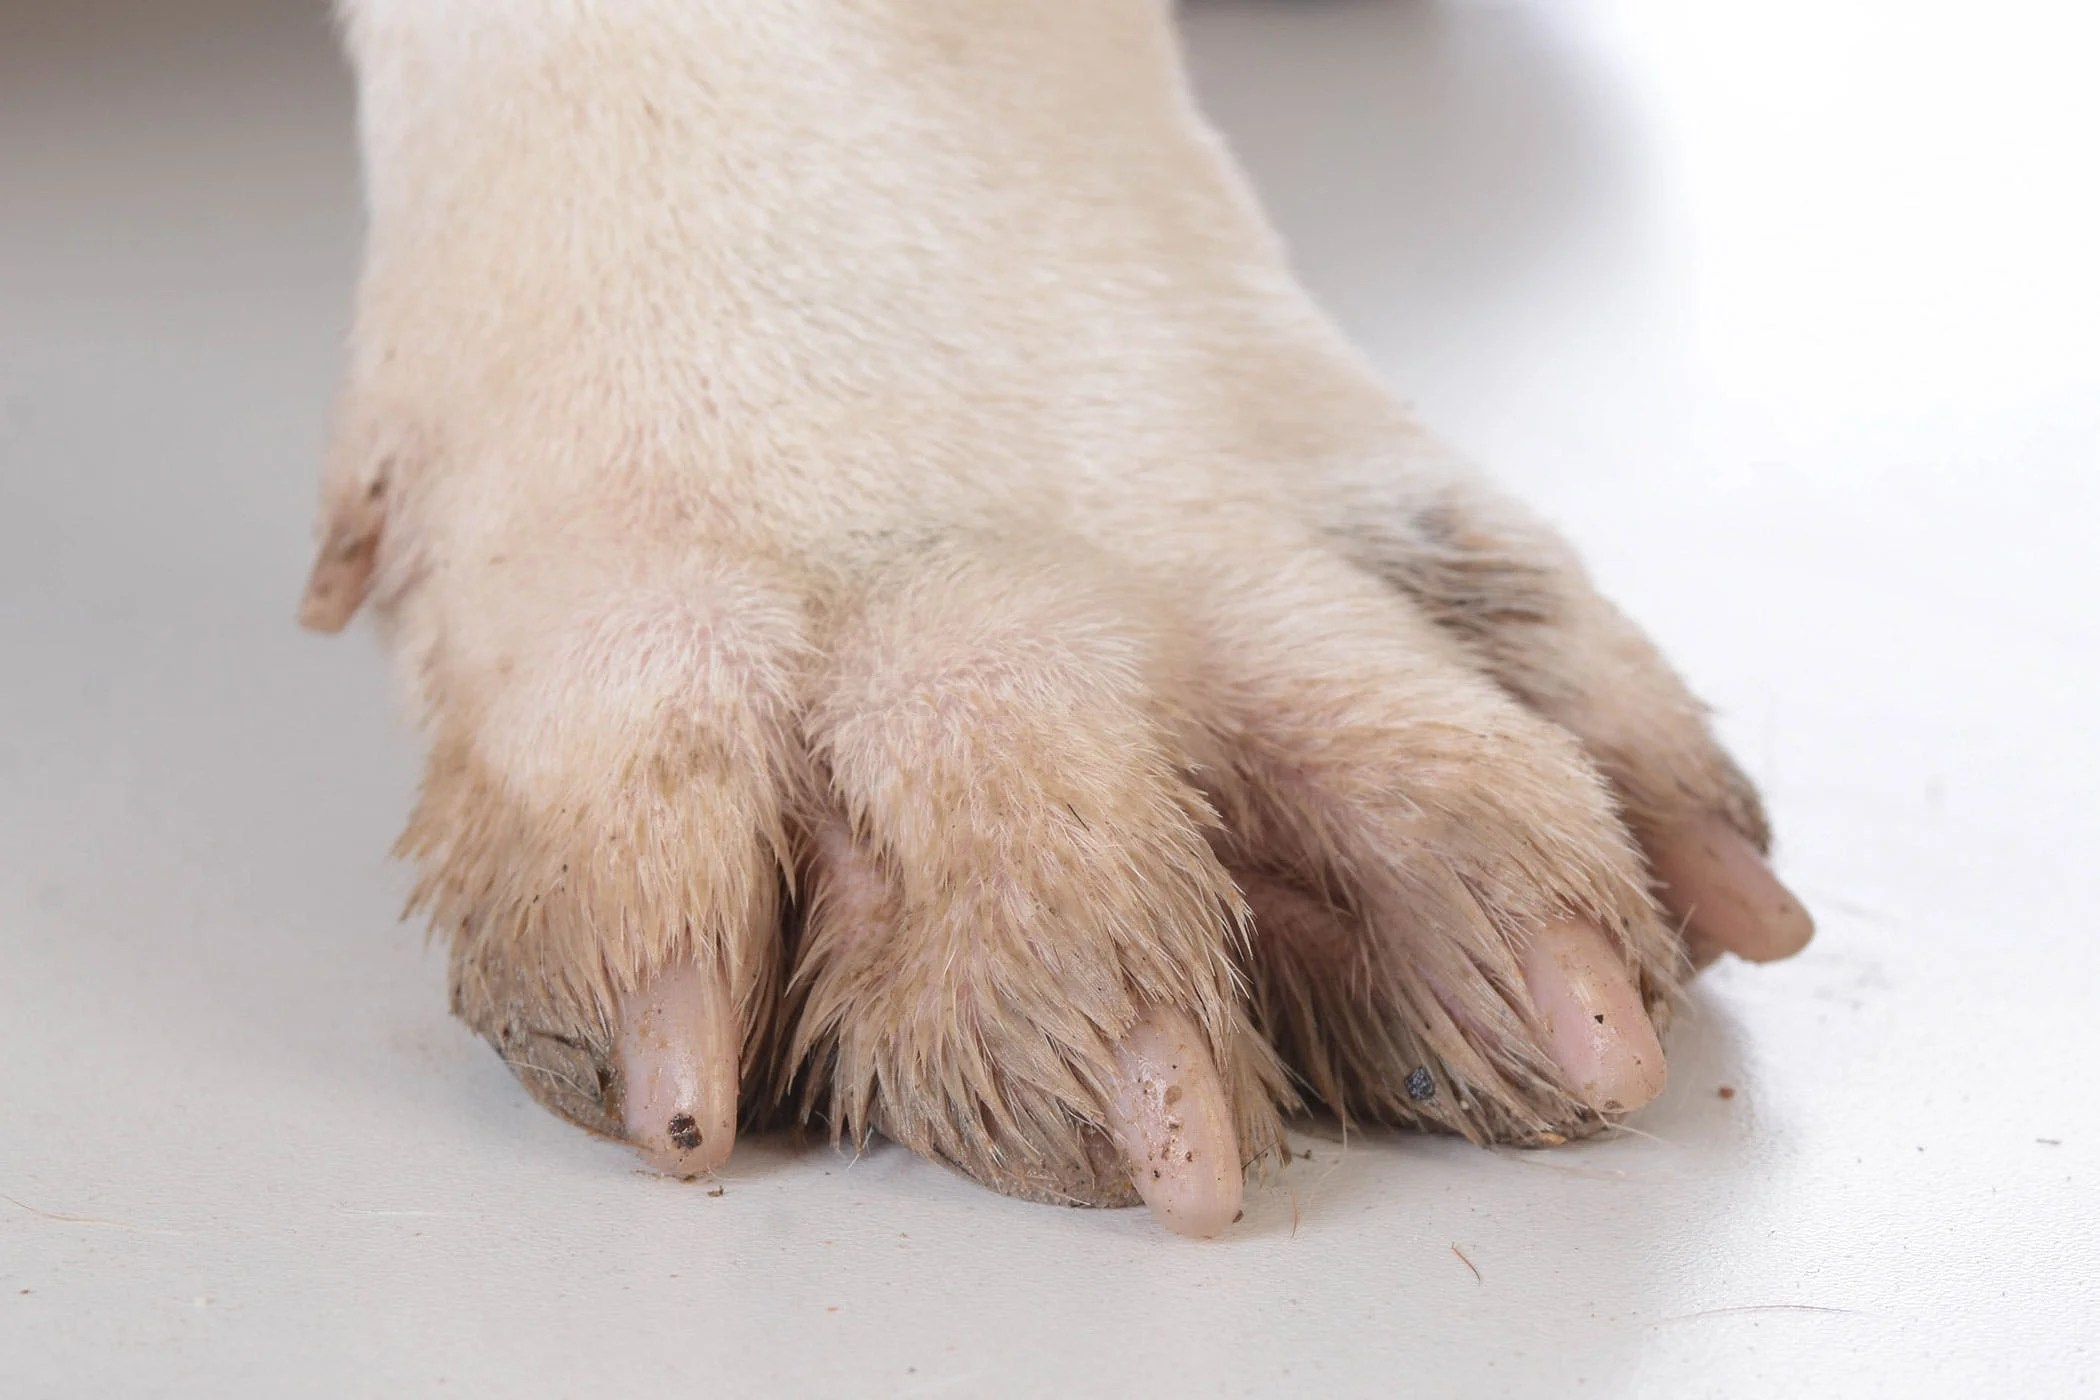 Dazzling Nail Disorders Claw Nail Disorders Dogs Claw Dogs Diagnosis Dew Claw Removal Pain Dew Claw Removal Dog bark post Dew Claw Removal